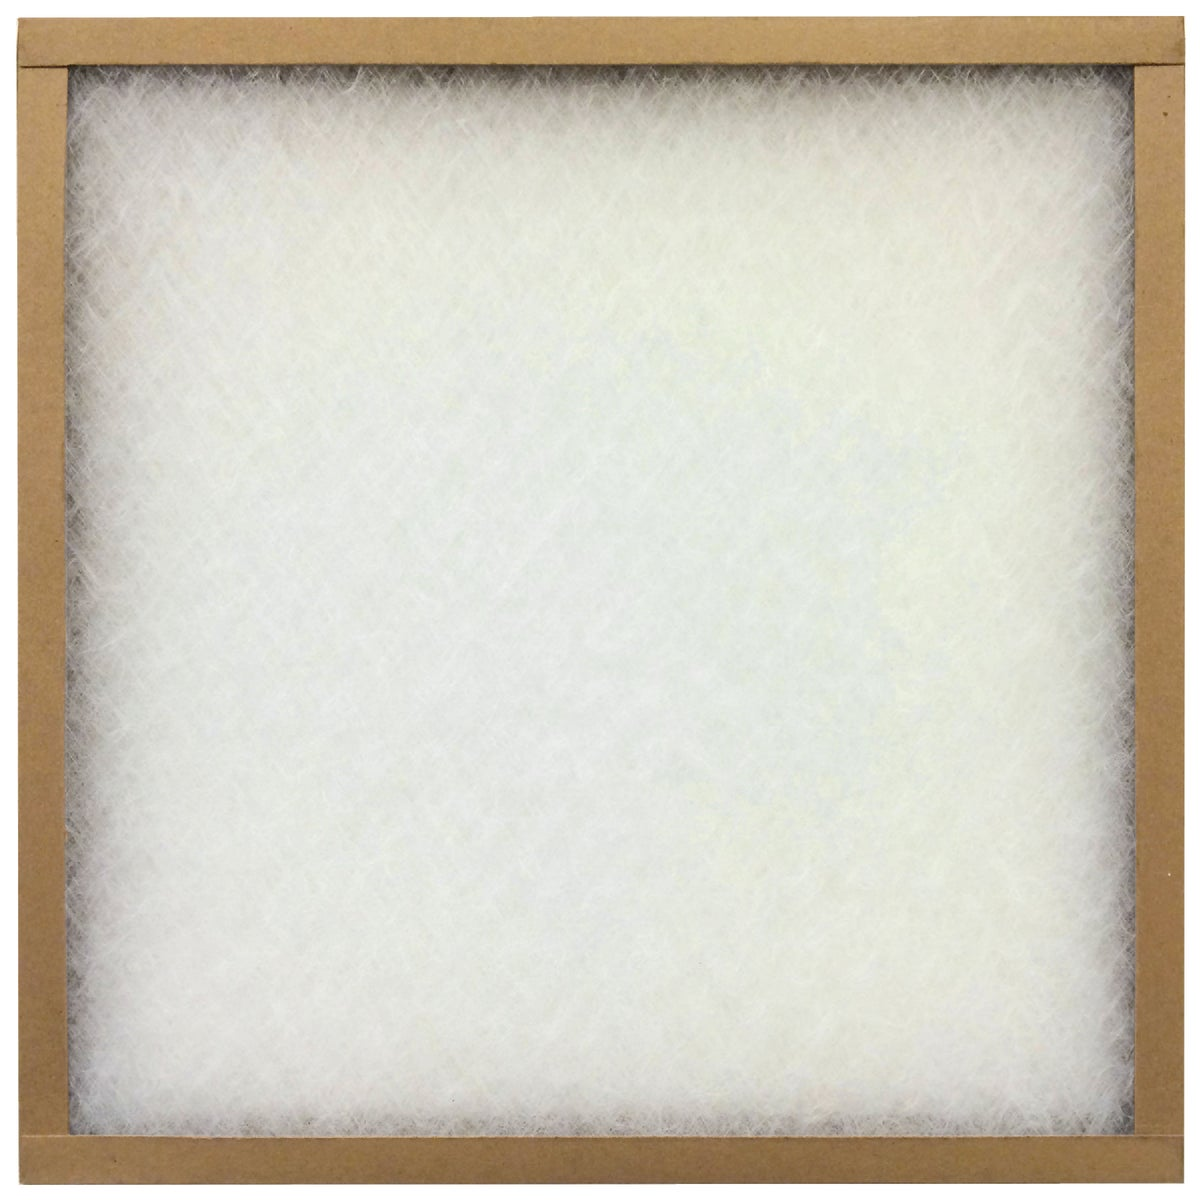 12X18X1 FBRGL AIR FILTER - 10055.011218 by Flanders Corp